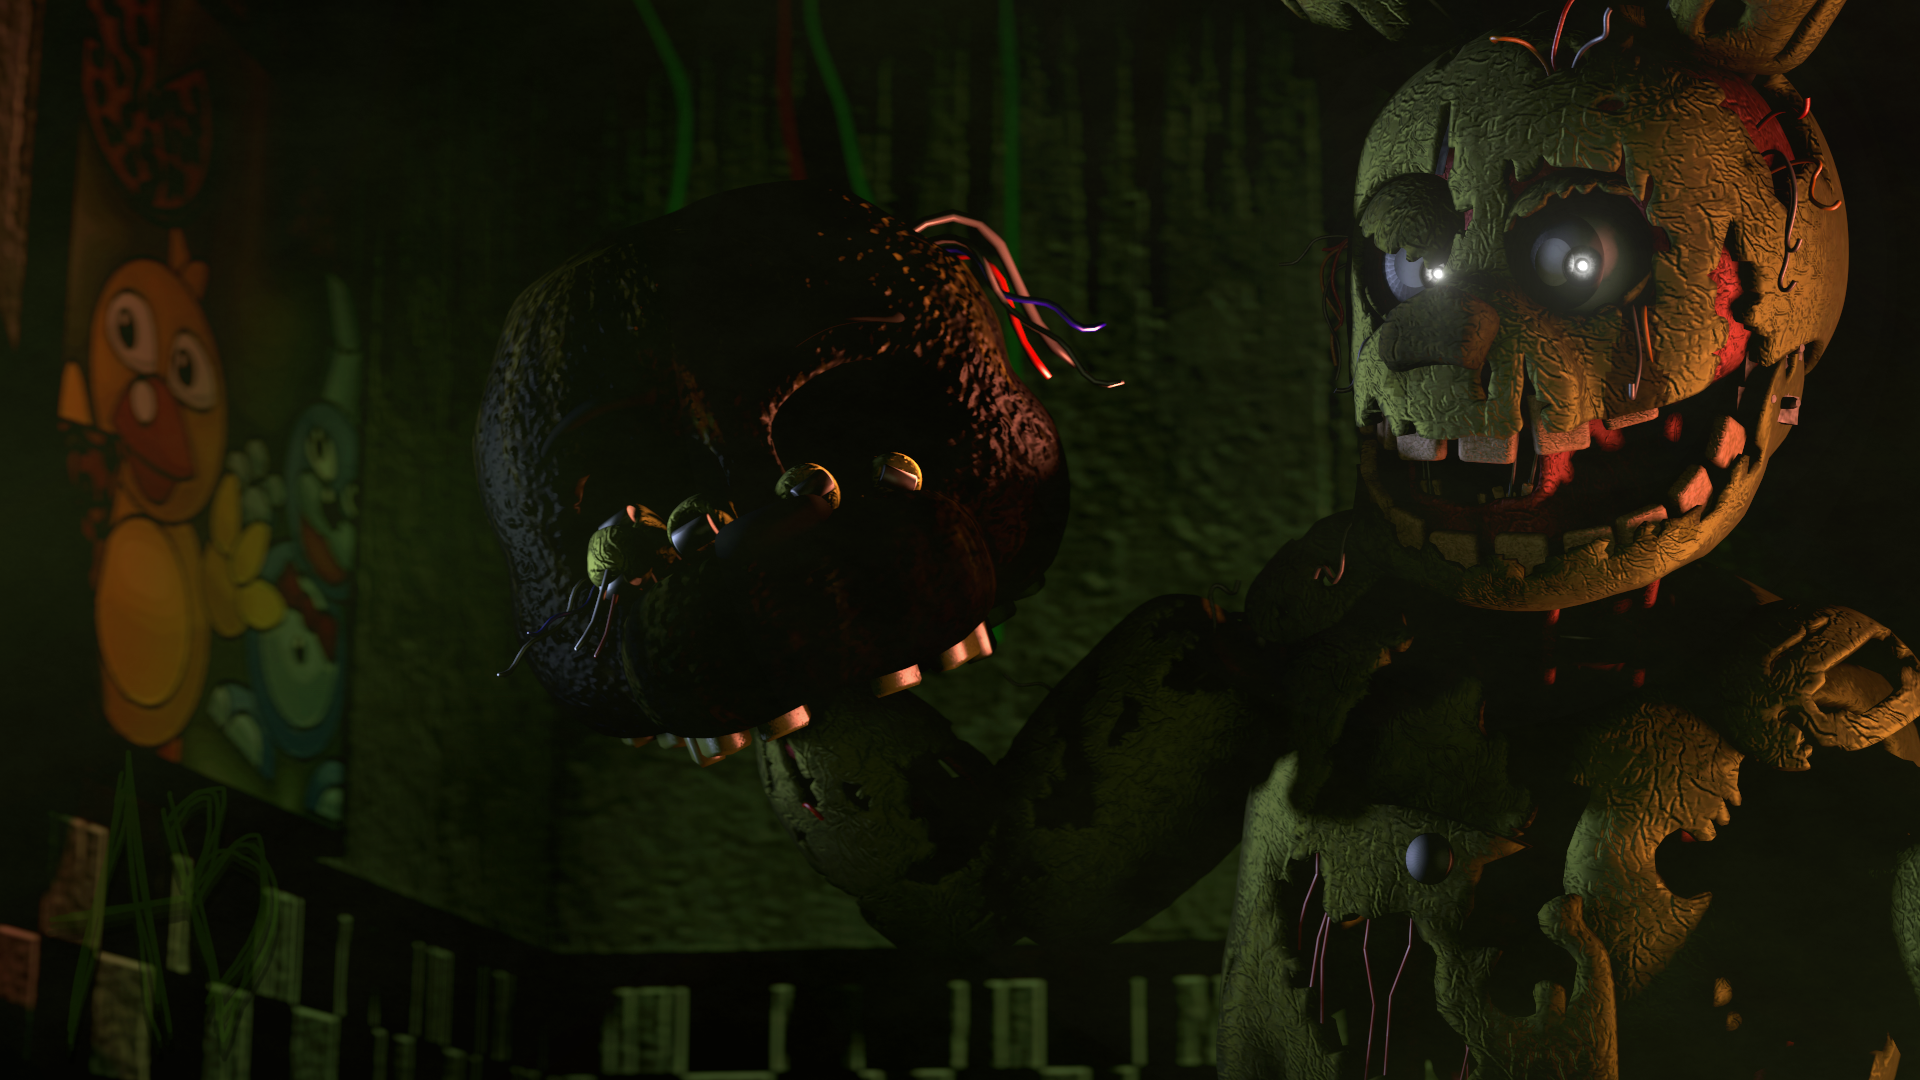 Free Download Five Nights At Freddys 3 Hd Wallpaper Background